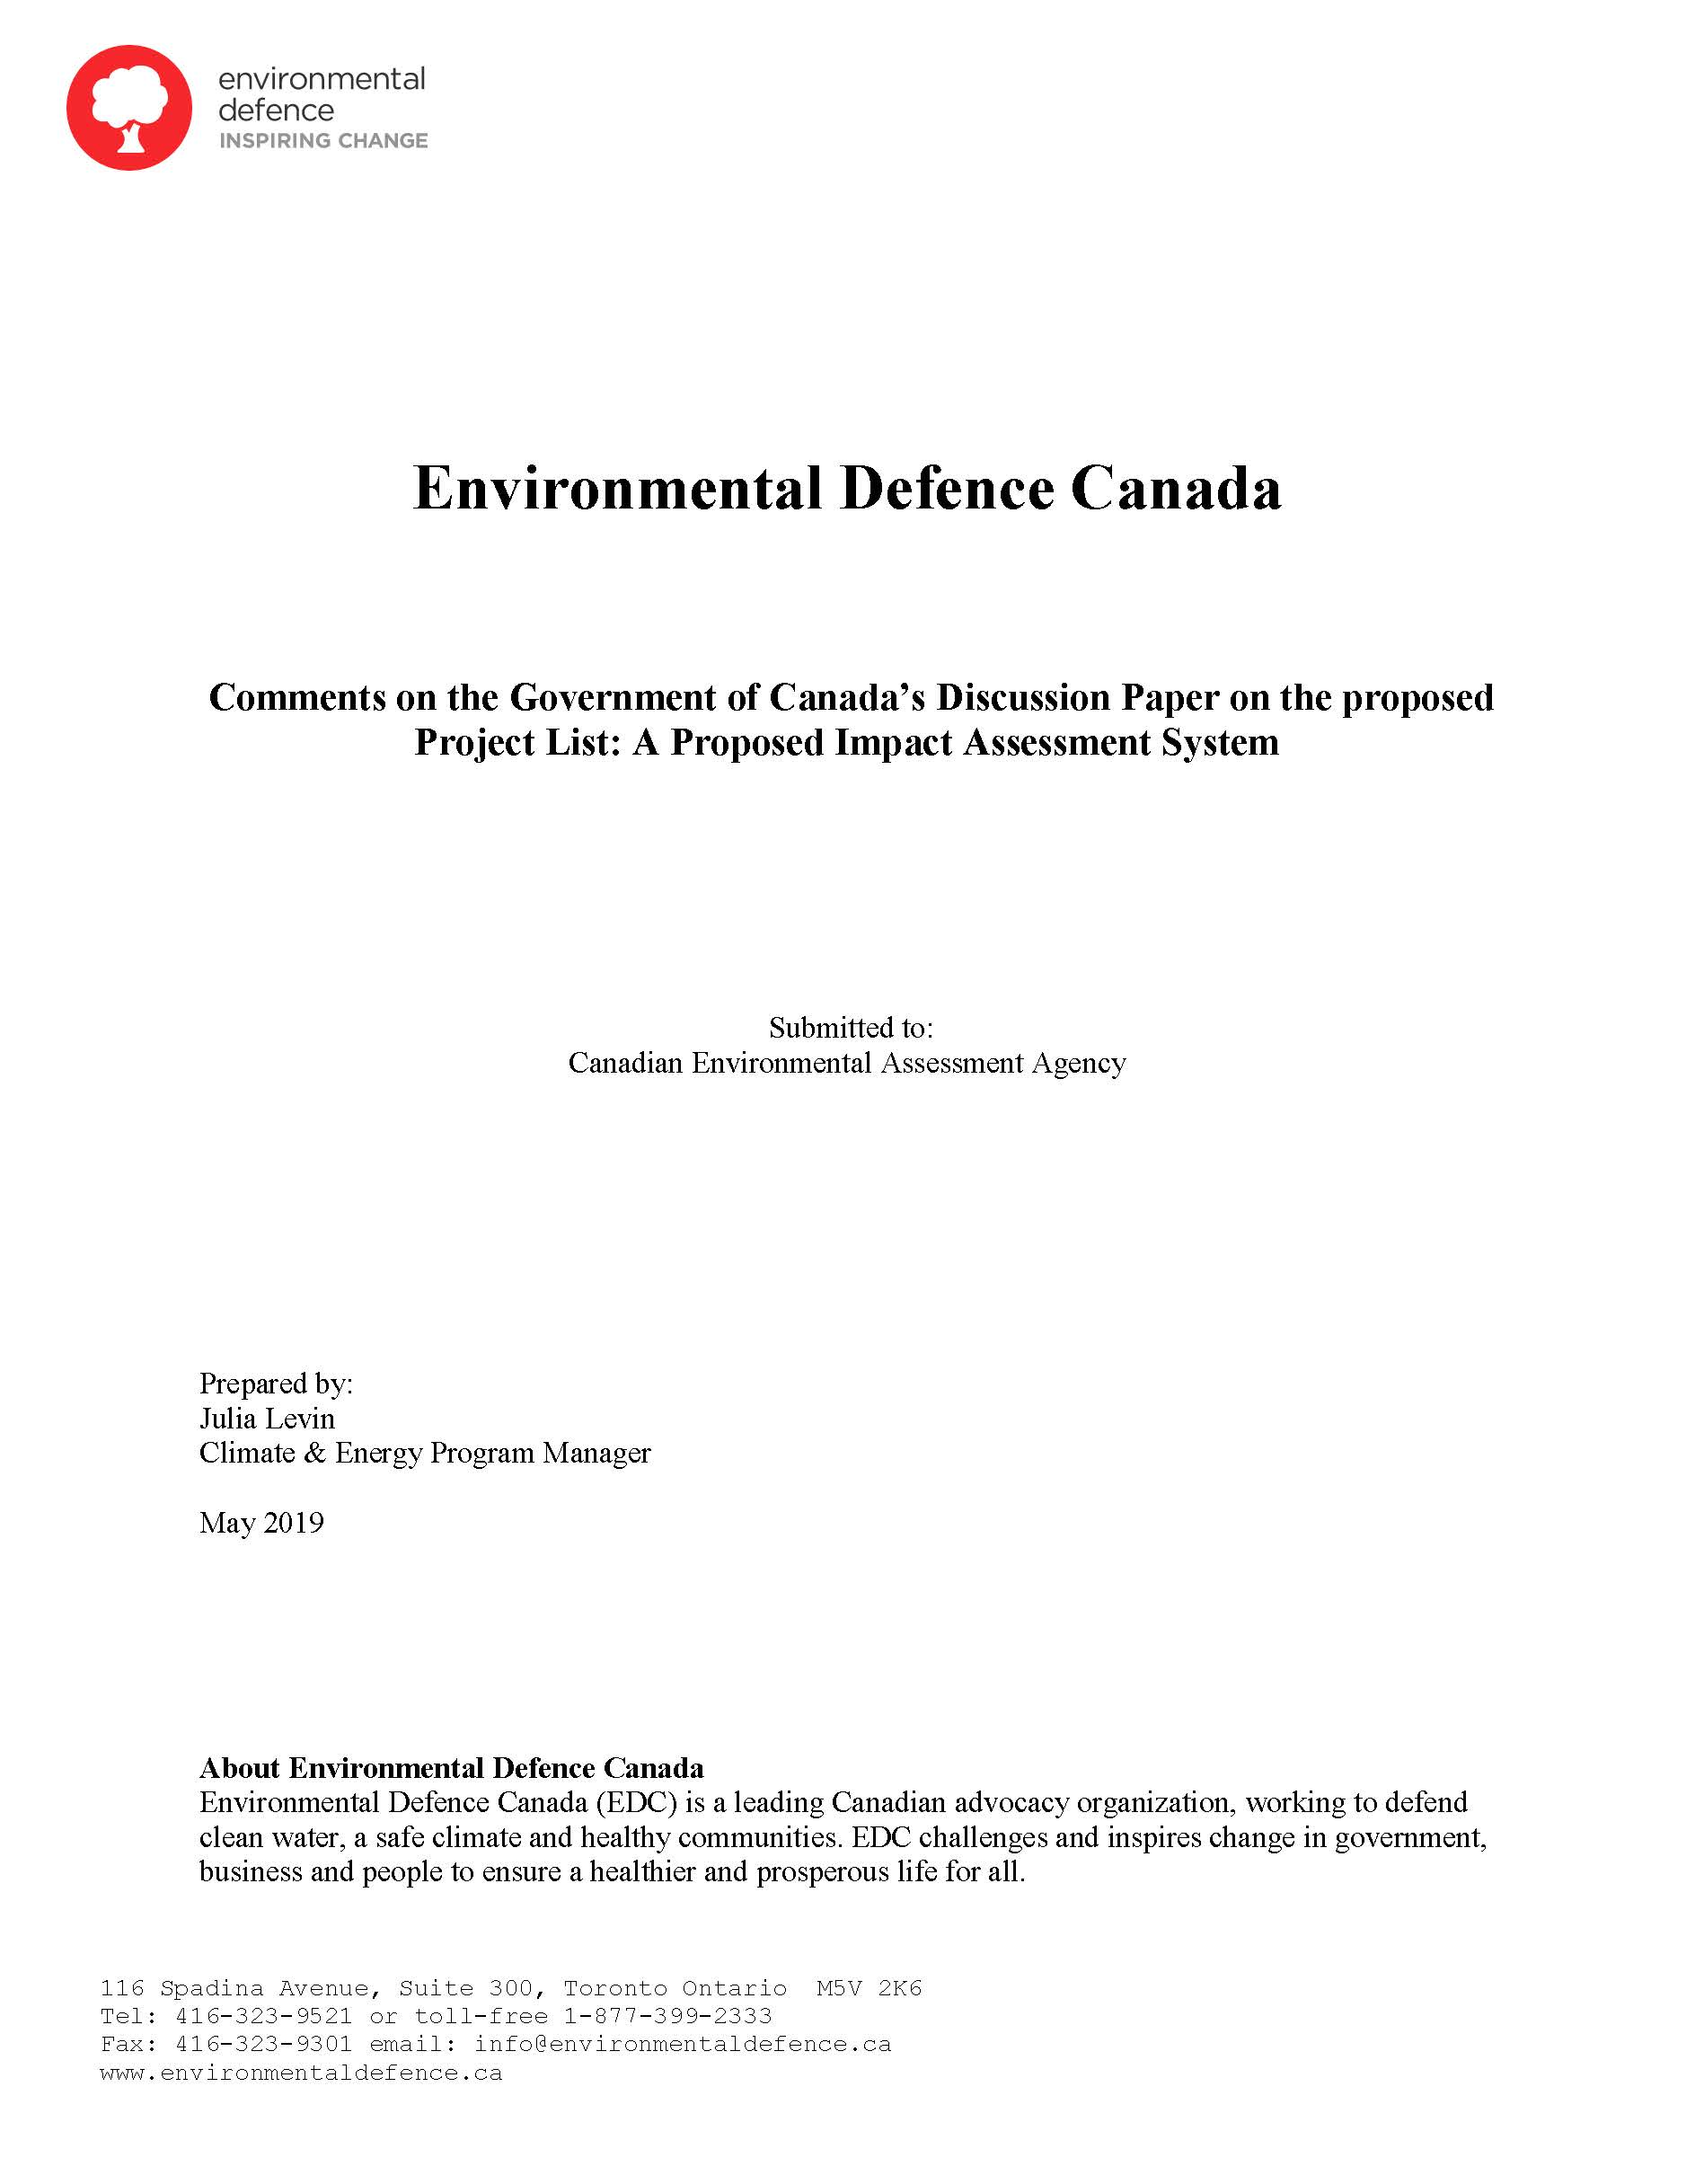 The cover of Environmental Defence's submission to the Canadian Environmental Assessment Agency on the Project List of Bill C-69